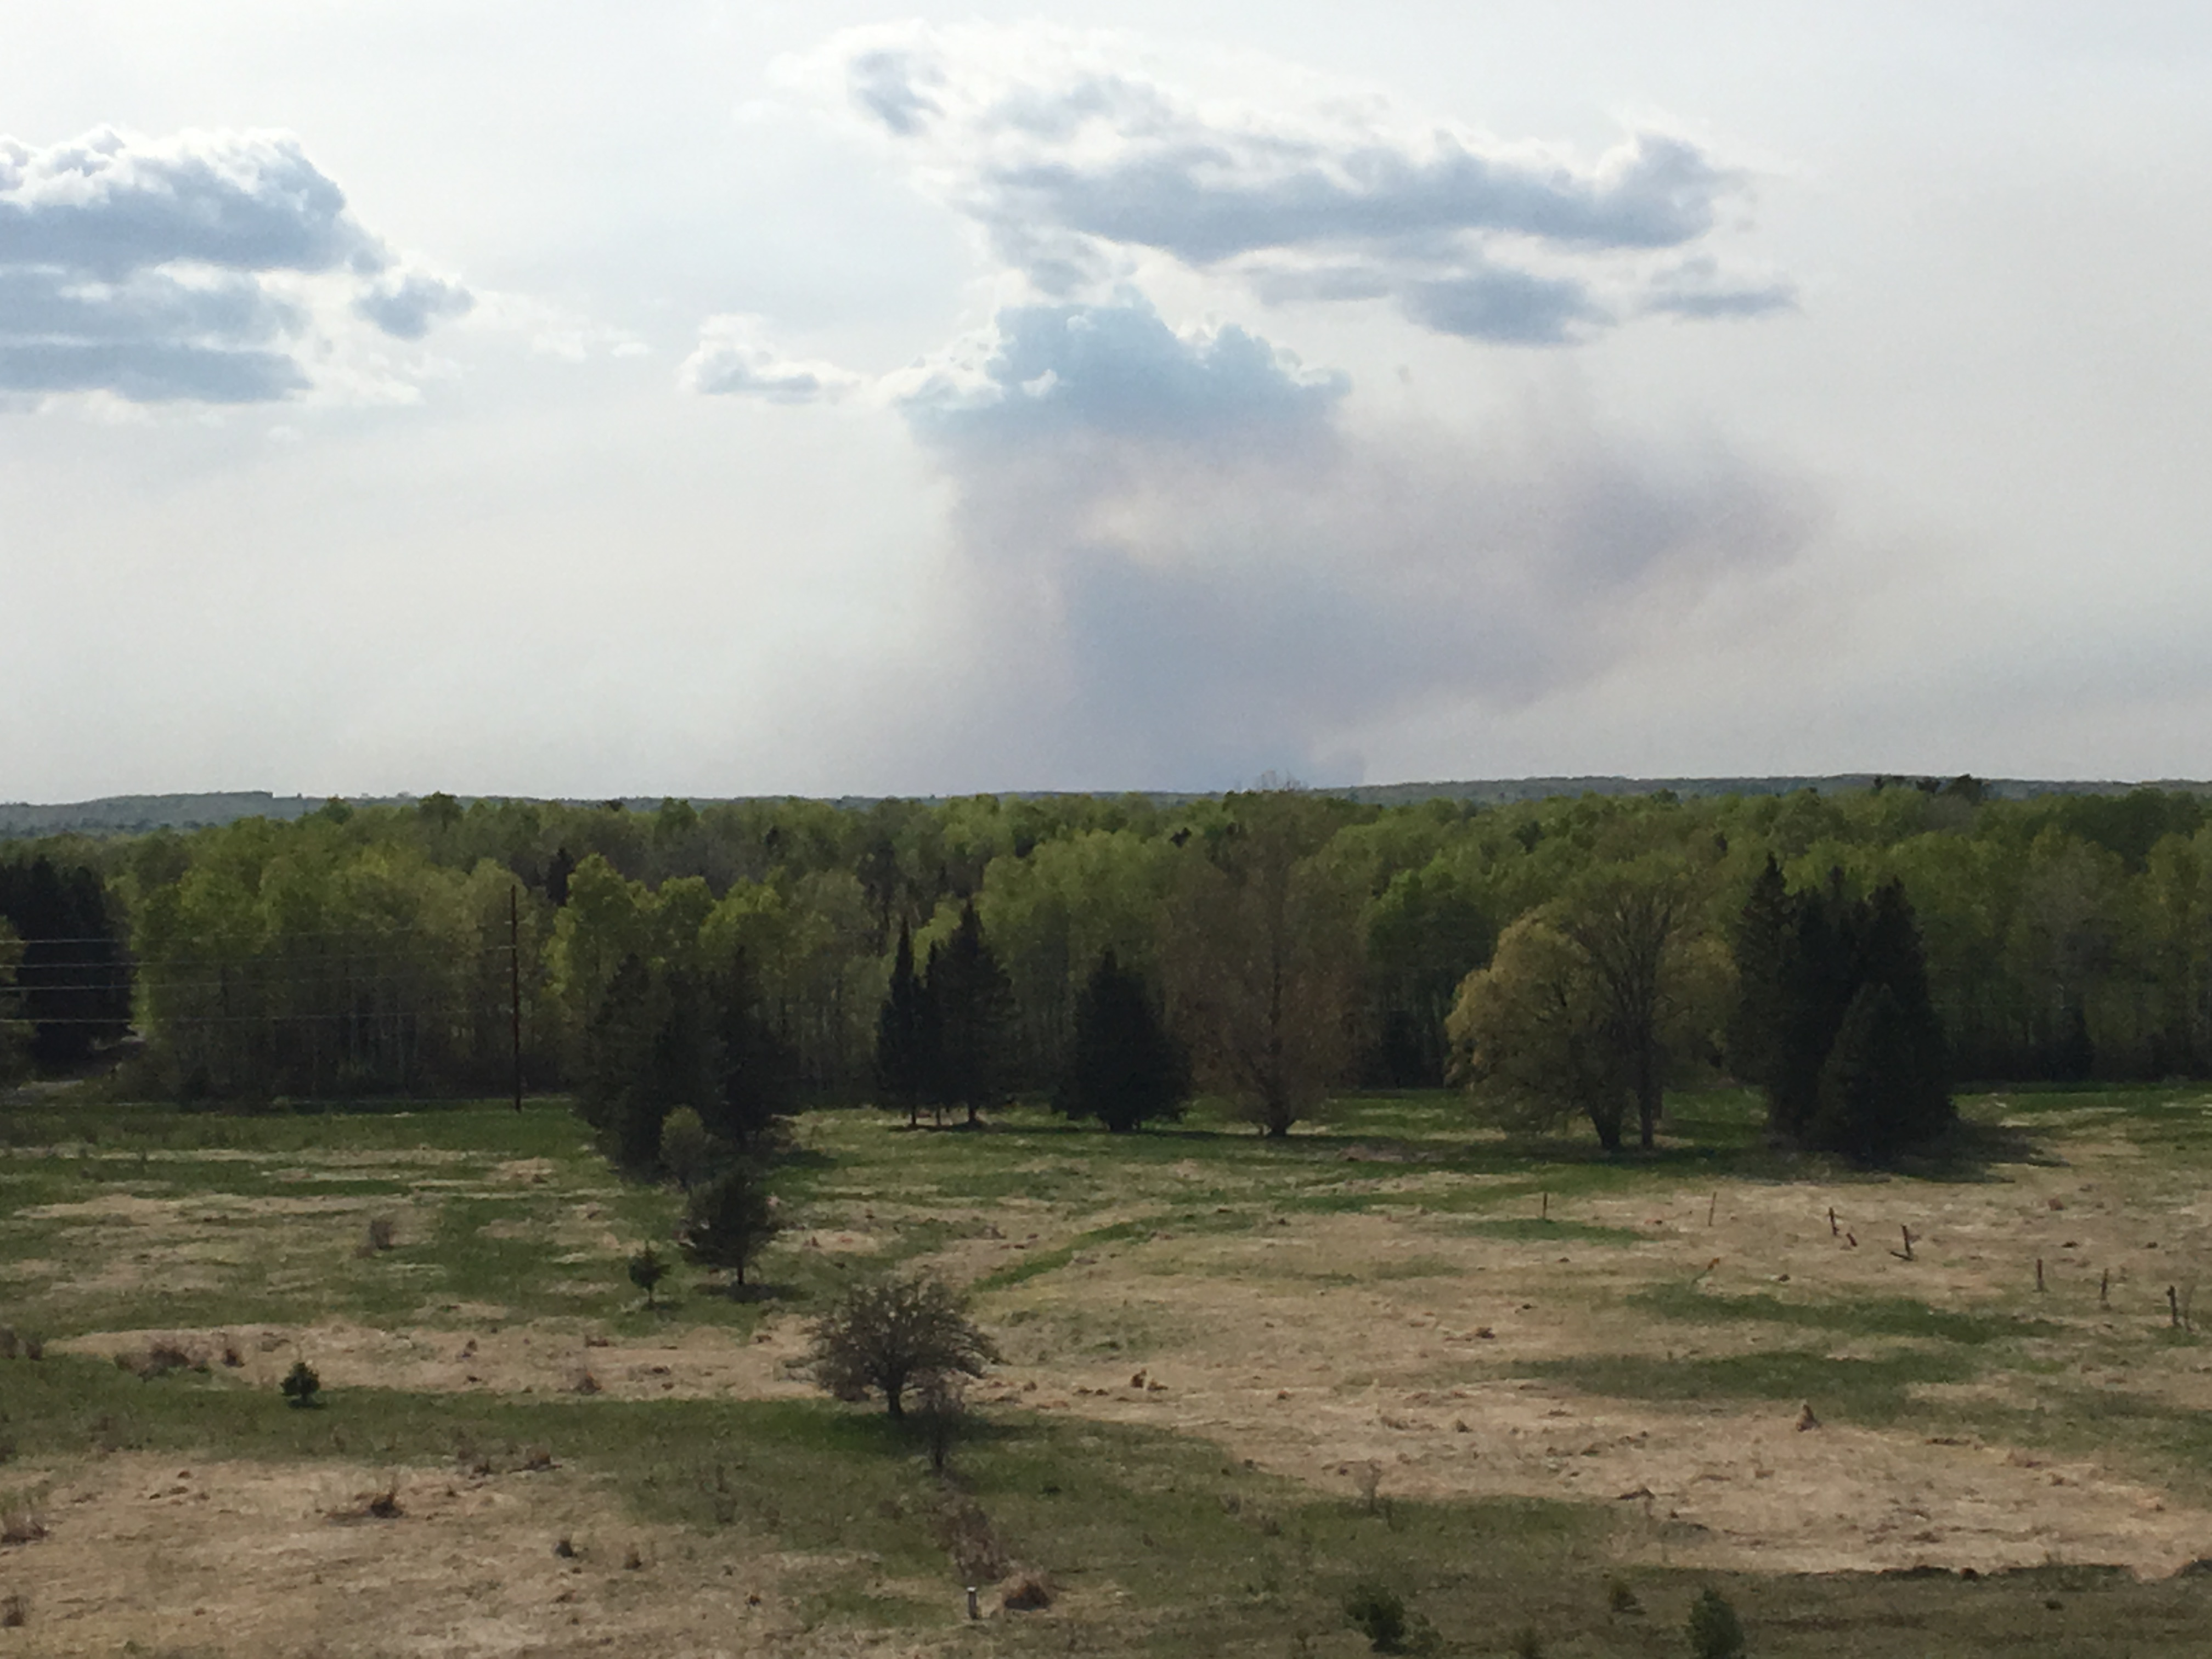 The smoke plume from a prescribe fire at Moquah Barrens can be seen from the observation tower.